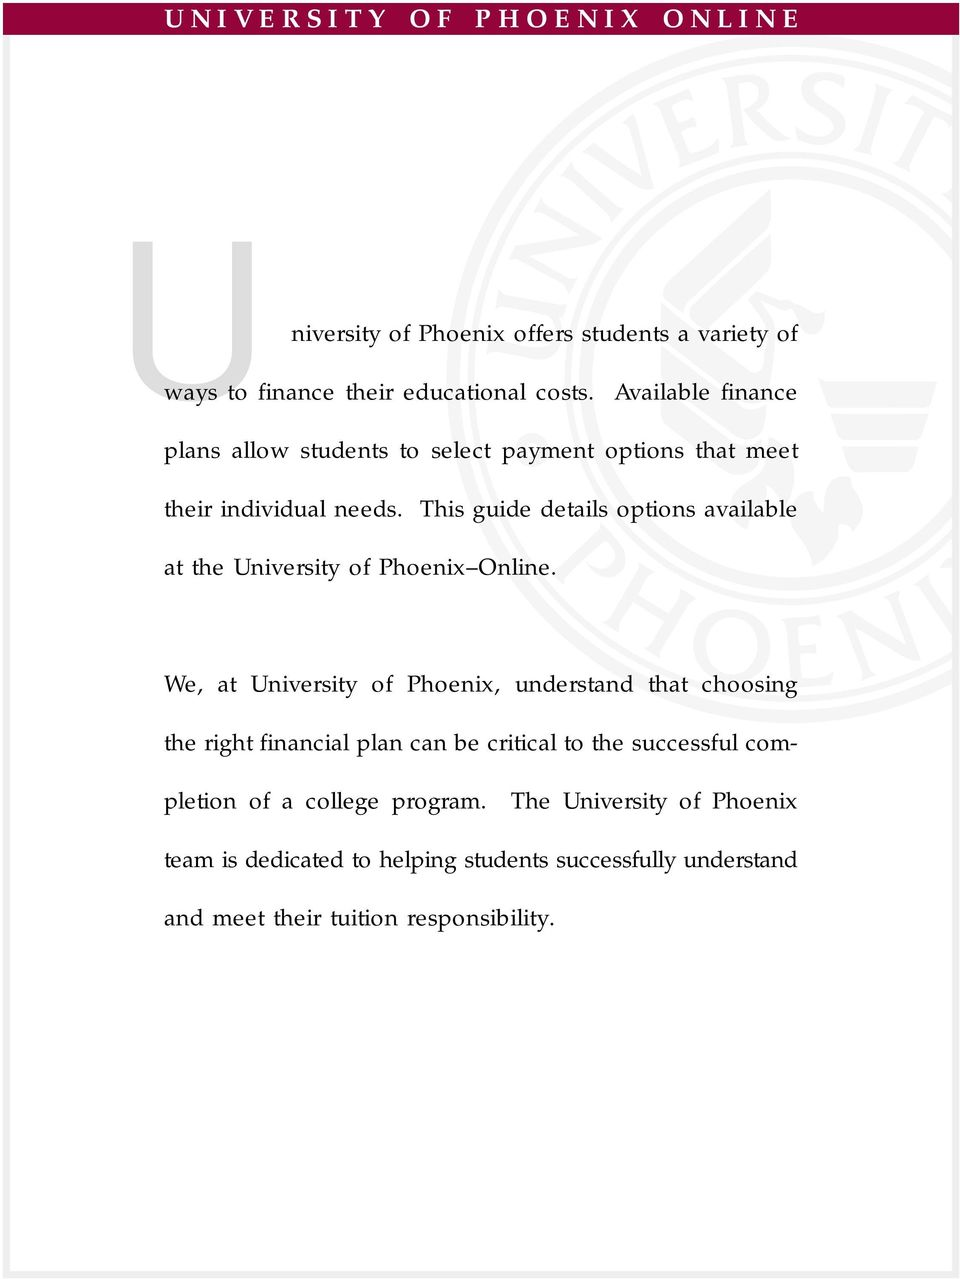 This guide details options available at the University of Phoenix Online.